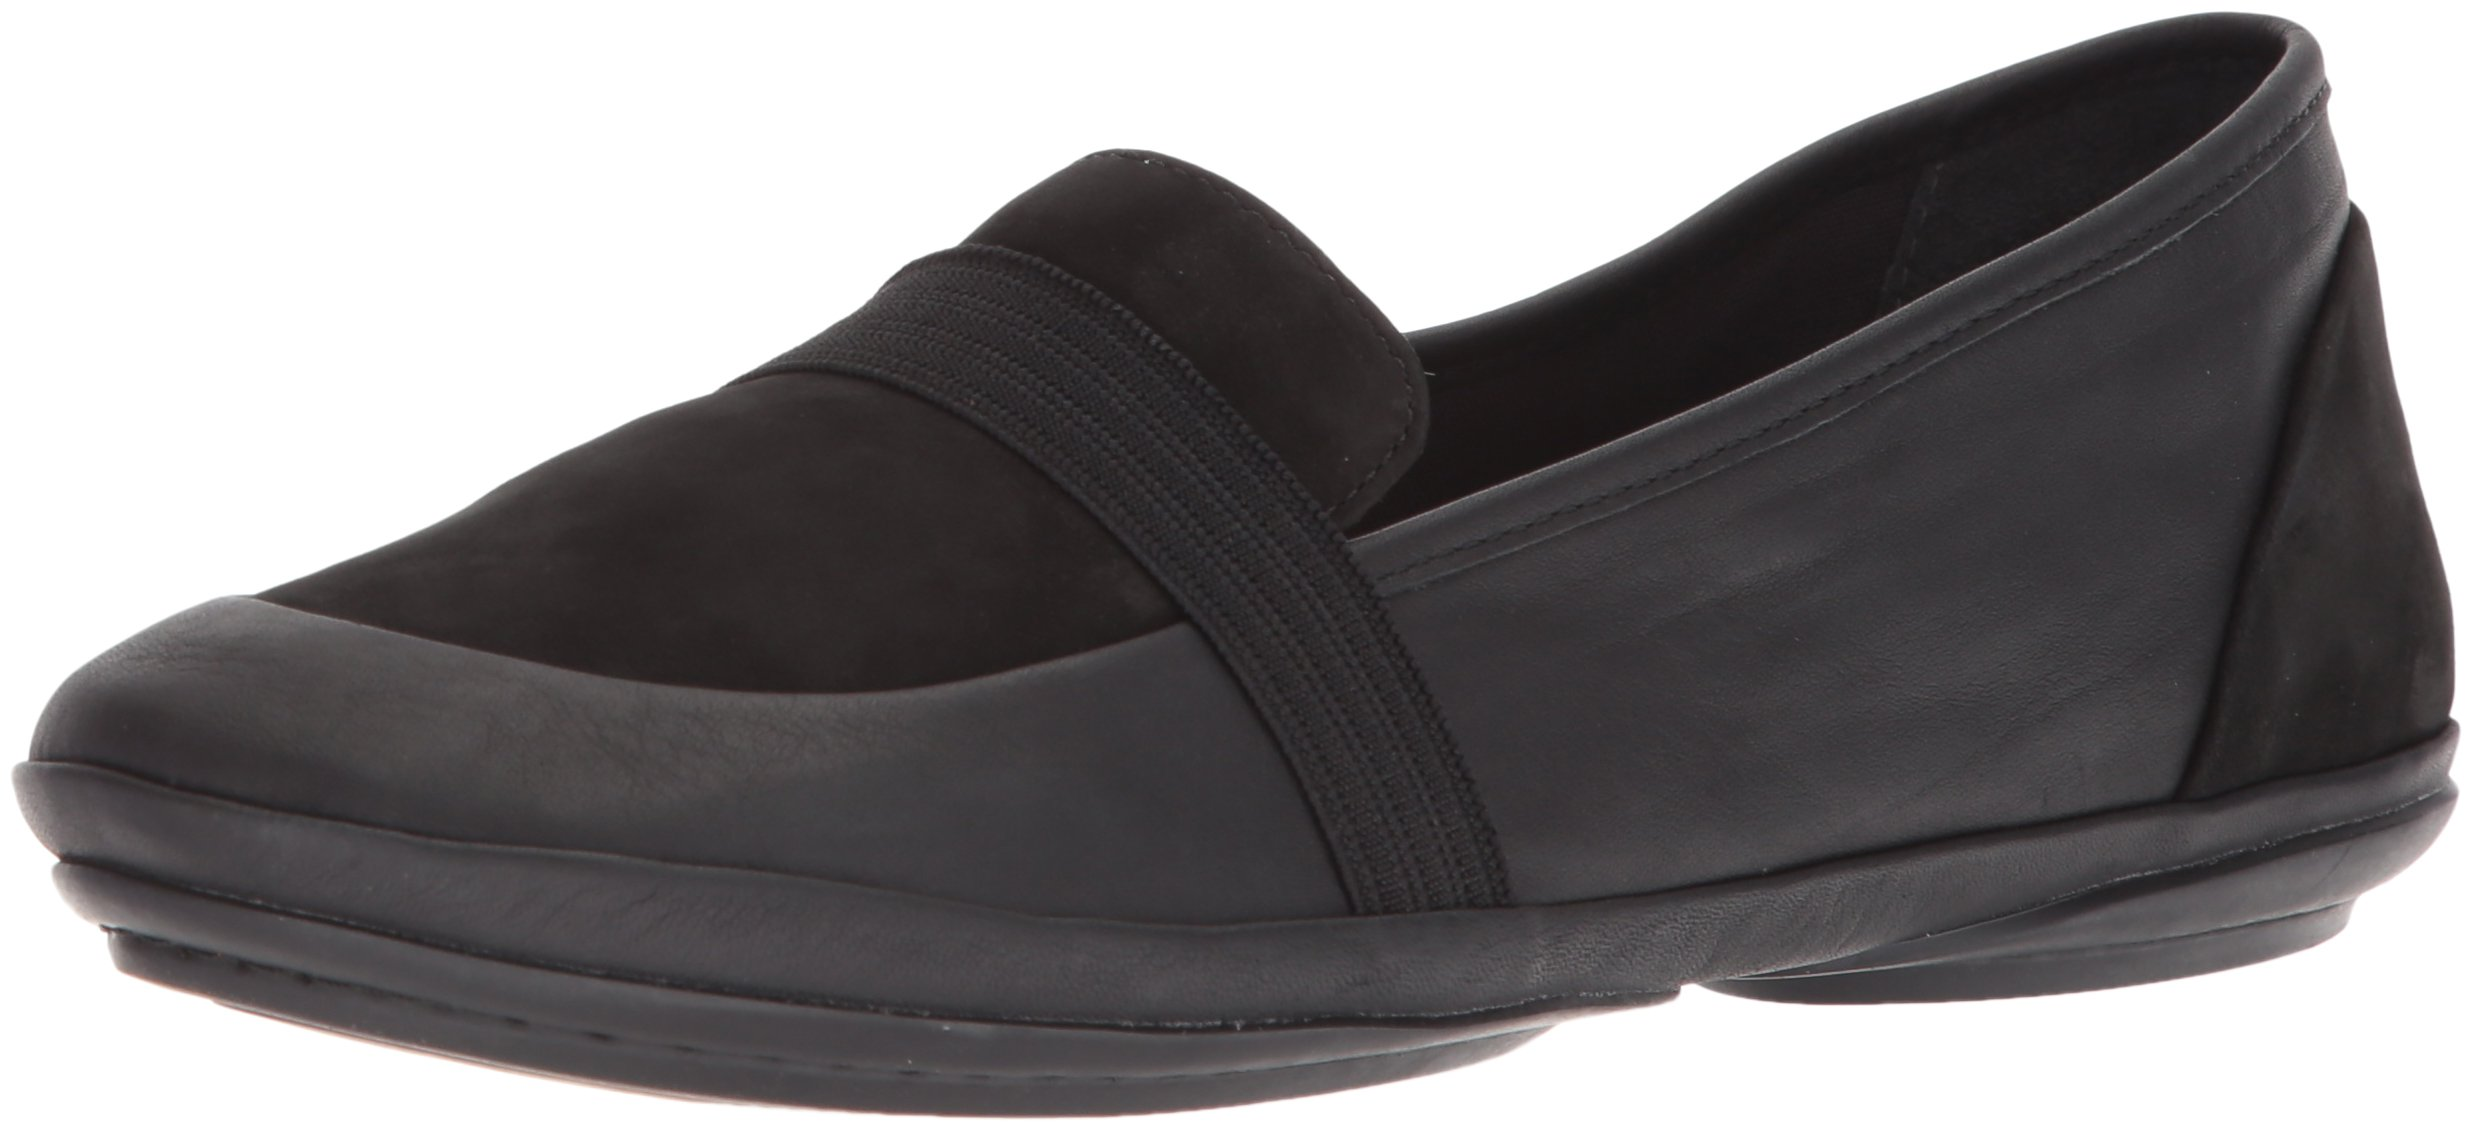 Camper Women's Right Nina K200618 Mary Jane Flat, Black, 37 M EU (7 US)